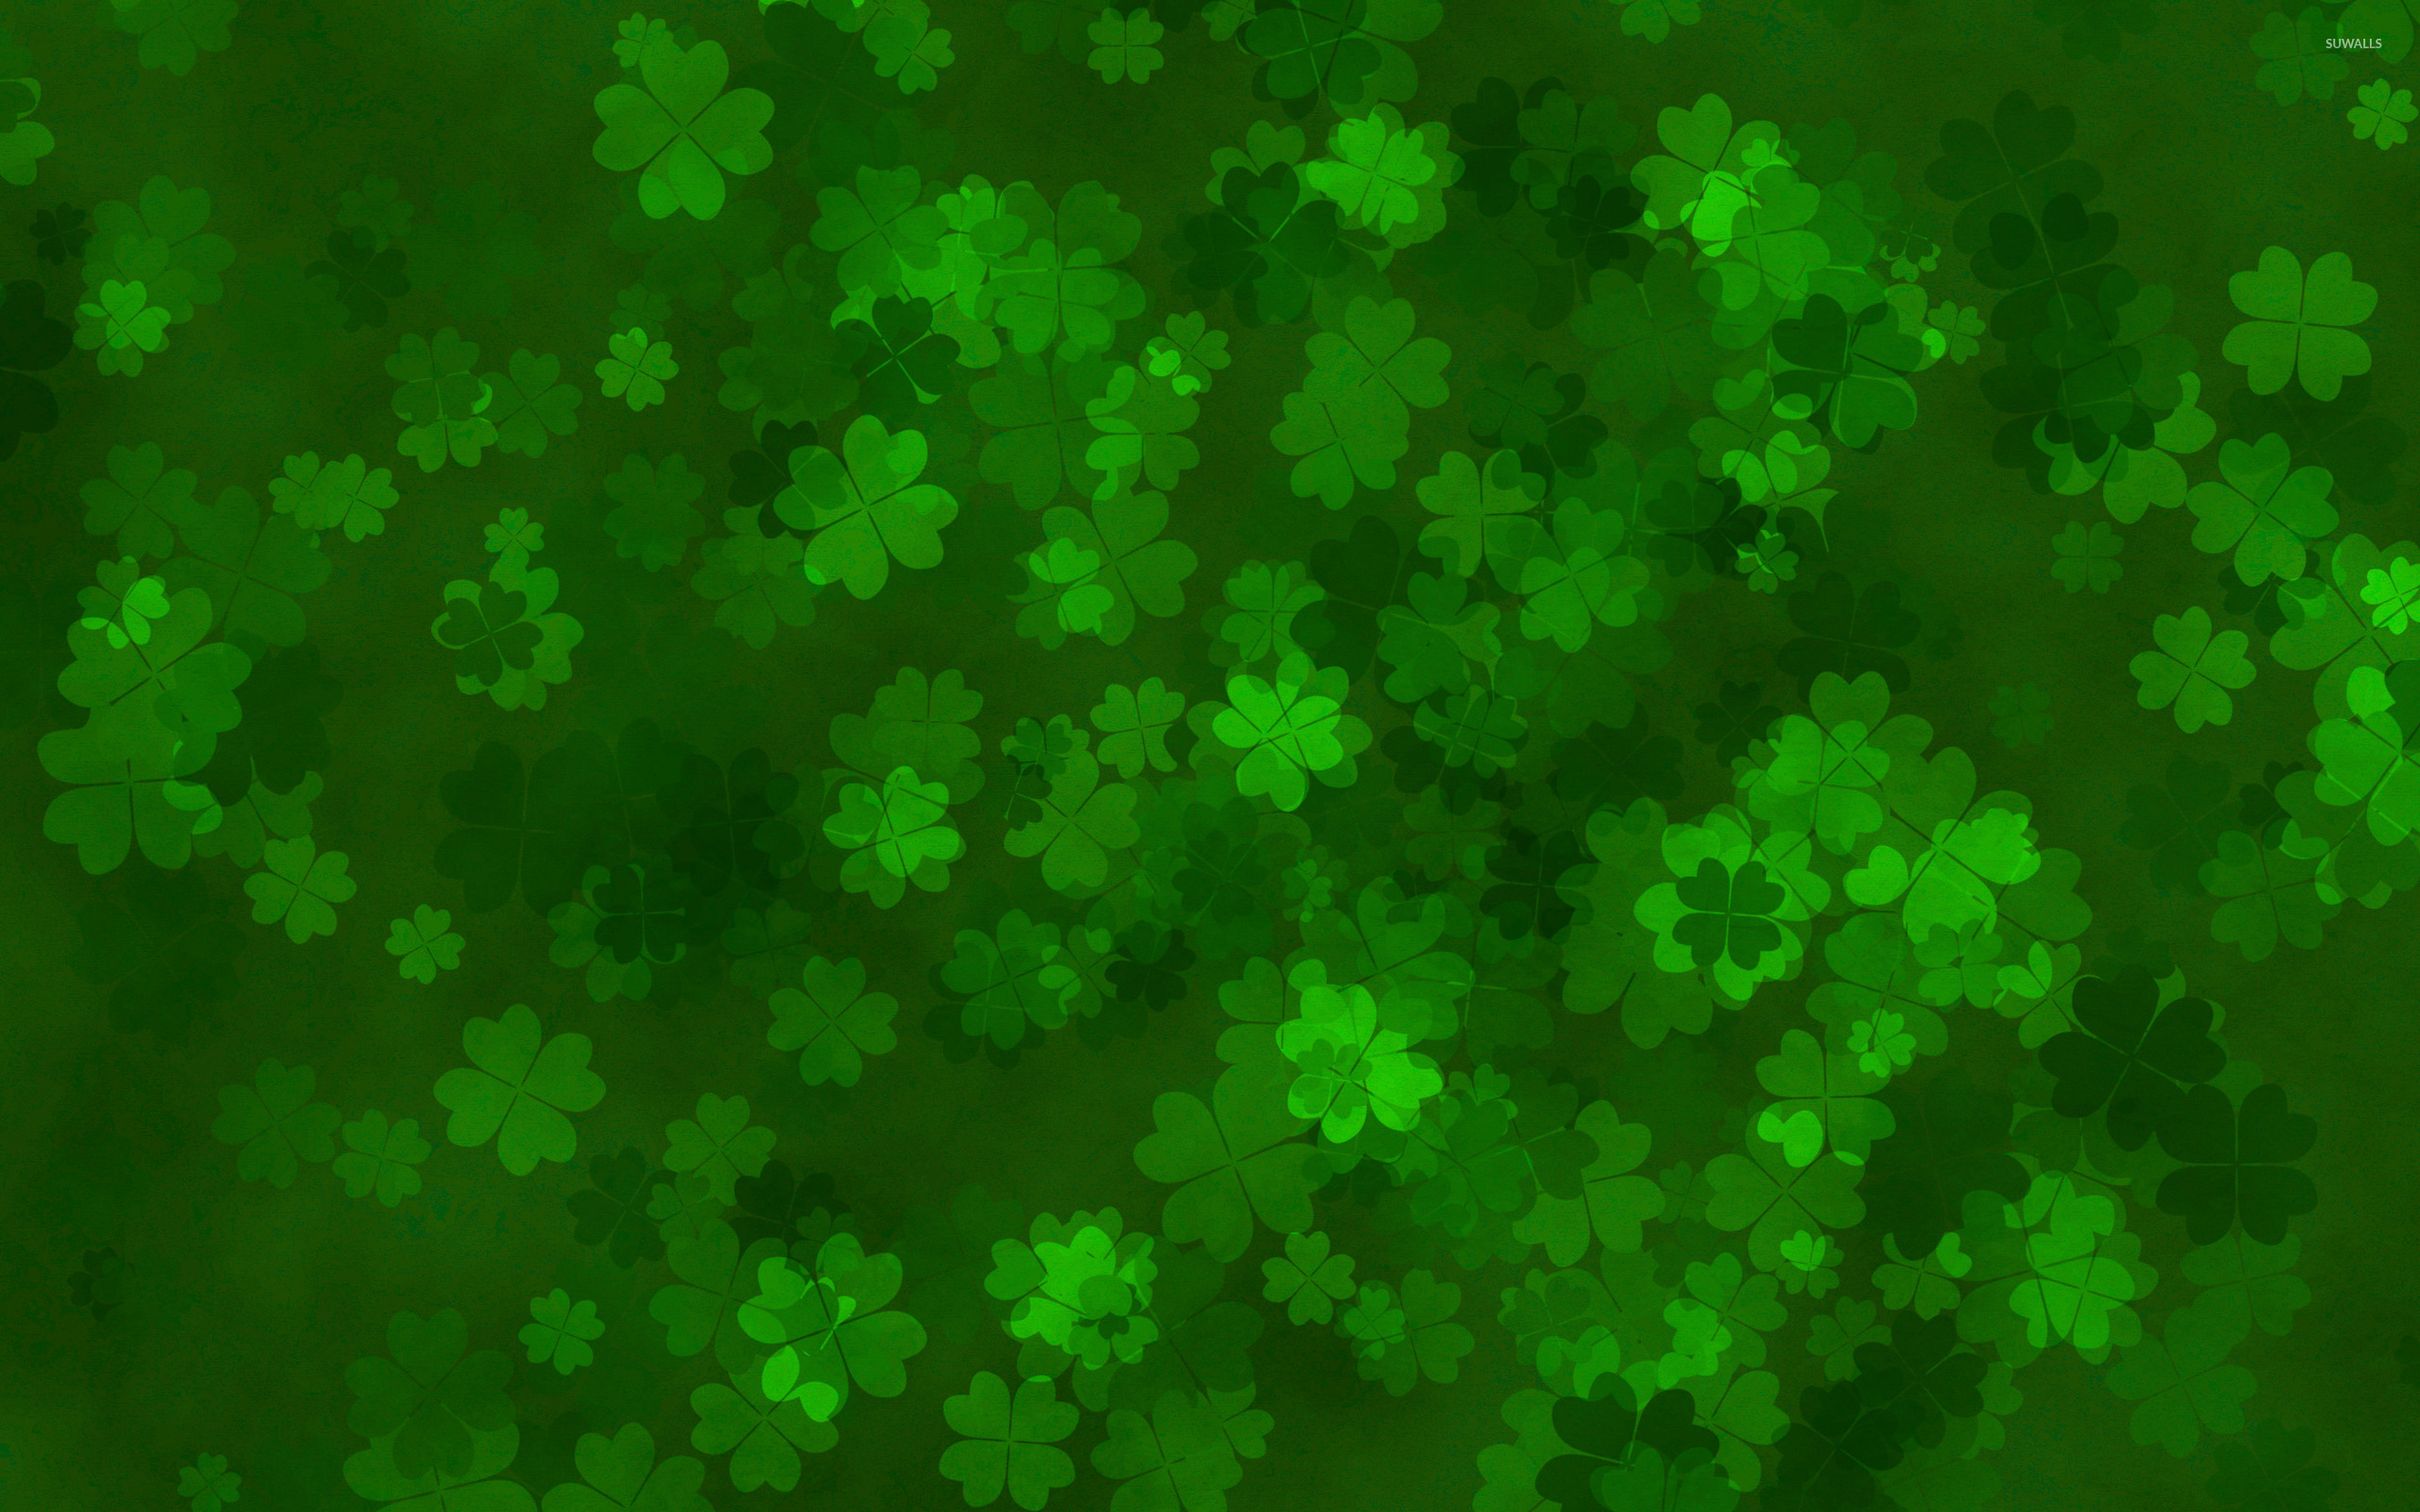 Clovers wallpaper   Holiday wallpapers   28270 2560x1600